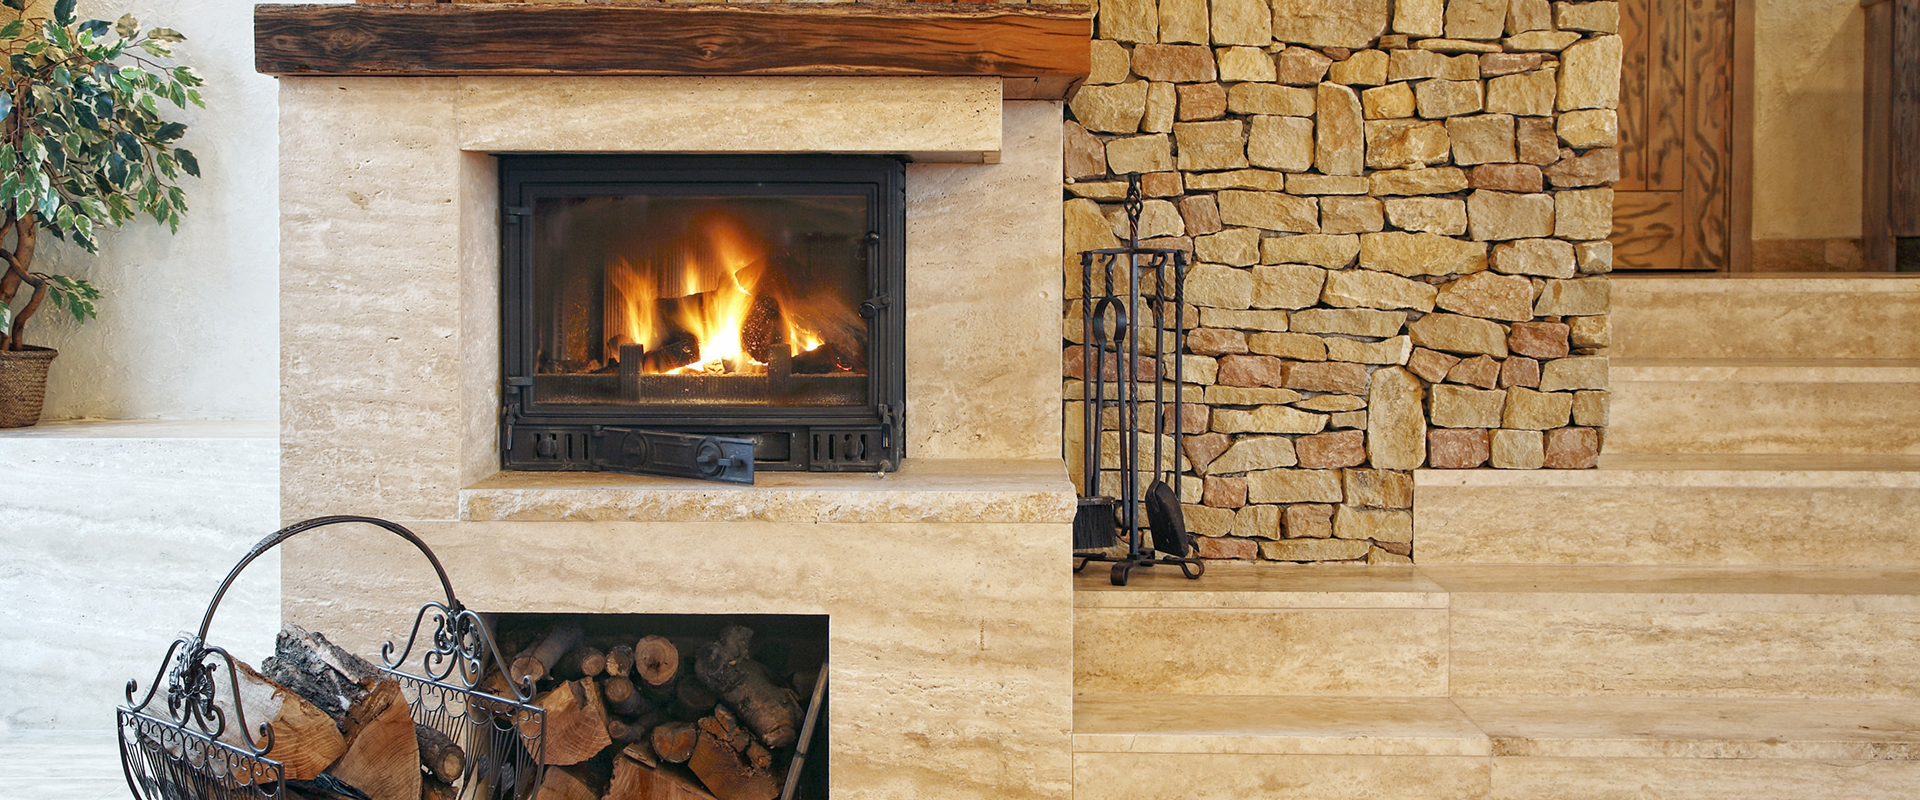 Stylish fireplace